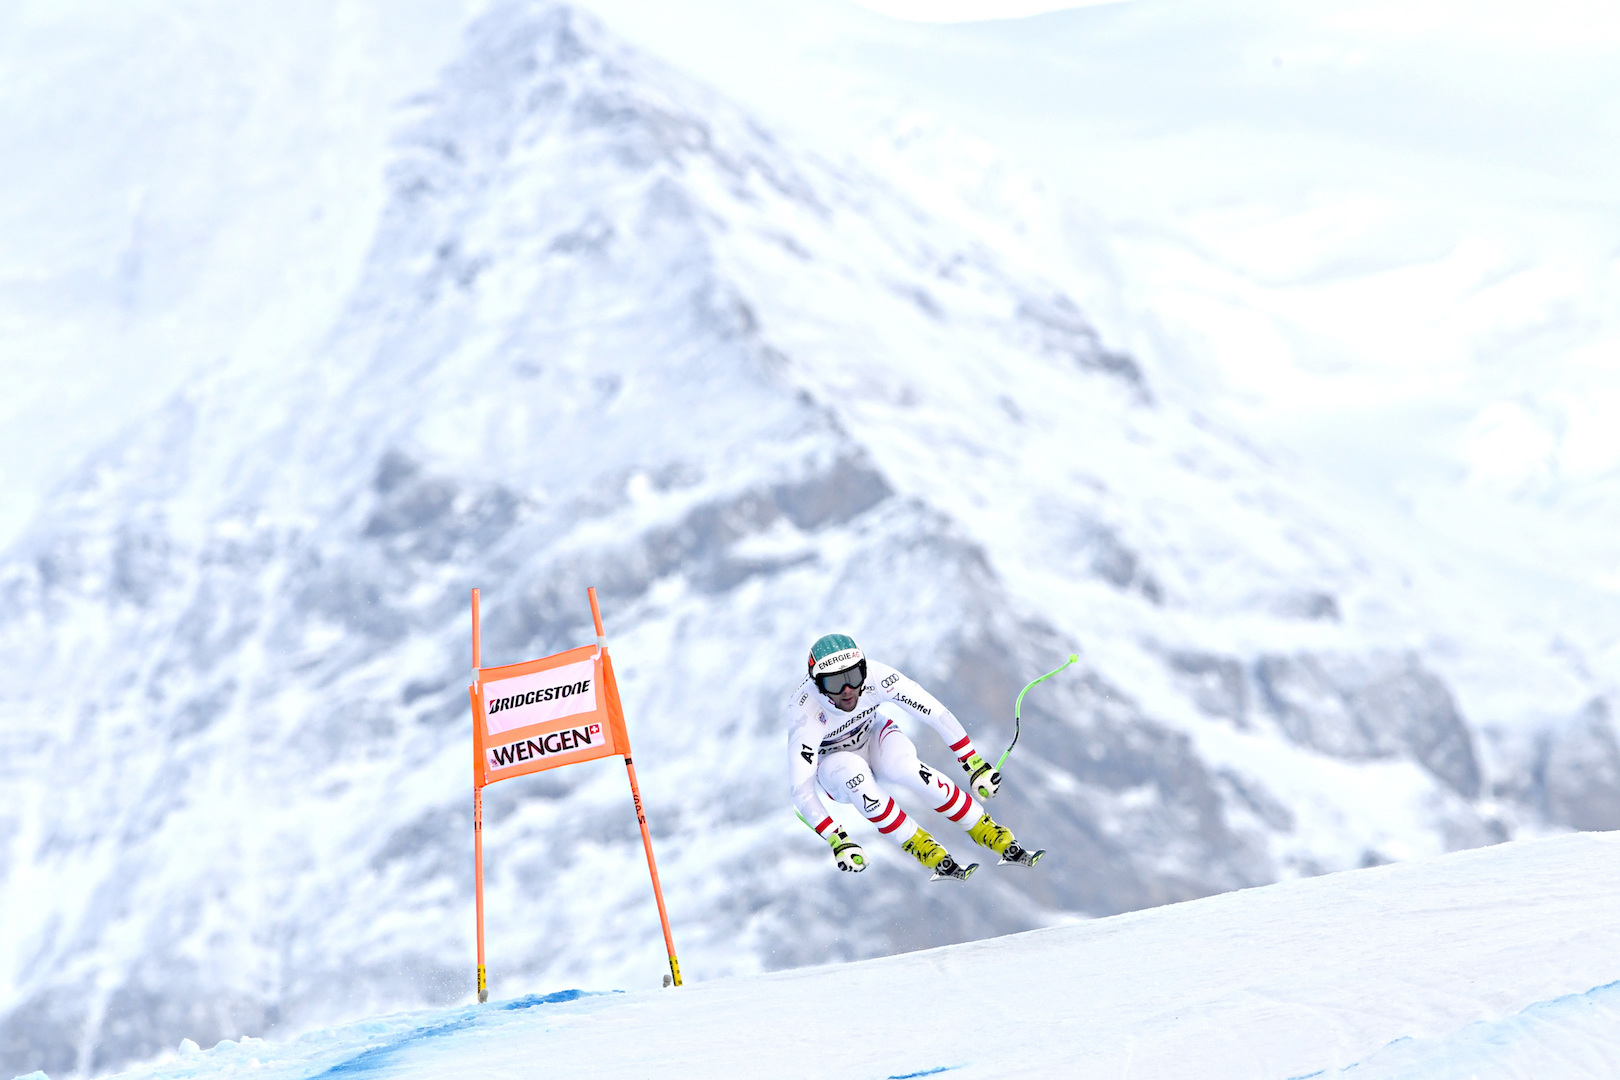 WENGEN, SWITZERLAND - JANUARY 12: Vincent Kriechmayr of Austria in action during the Audi FIS Alpine Ski World Cup Men's Combined on January 12, 2018 in Wengen, Switzerland. (Photo by Alain Grosclaude/Agence Zoom/Getty Images)